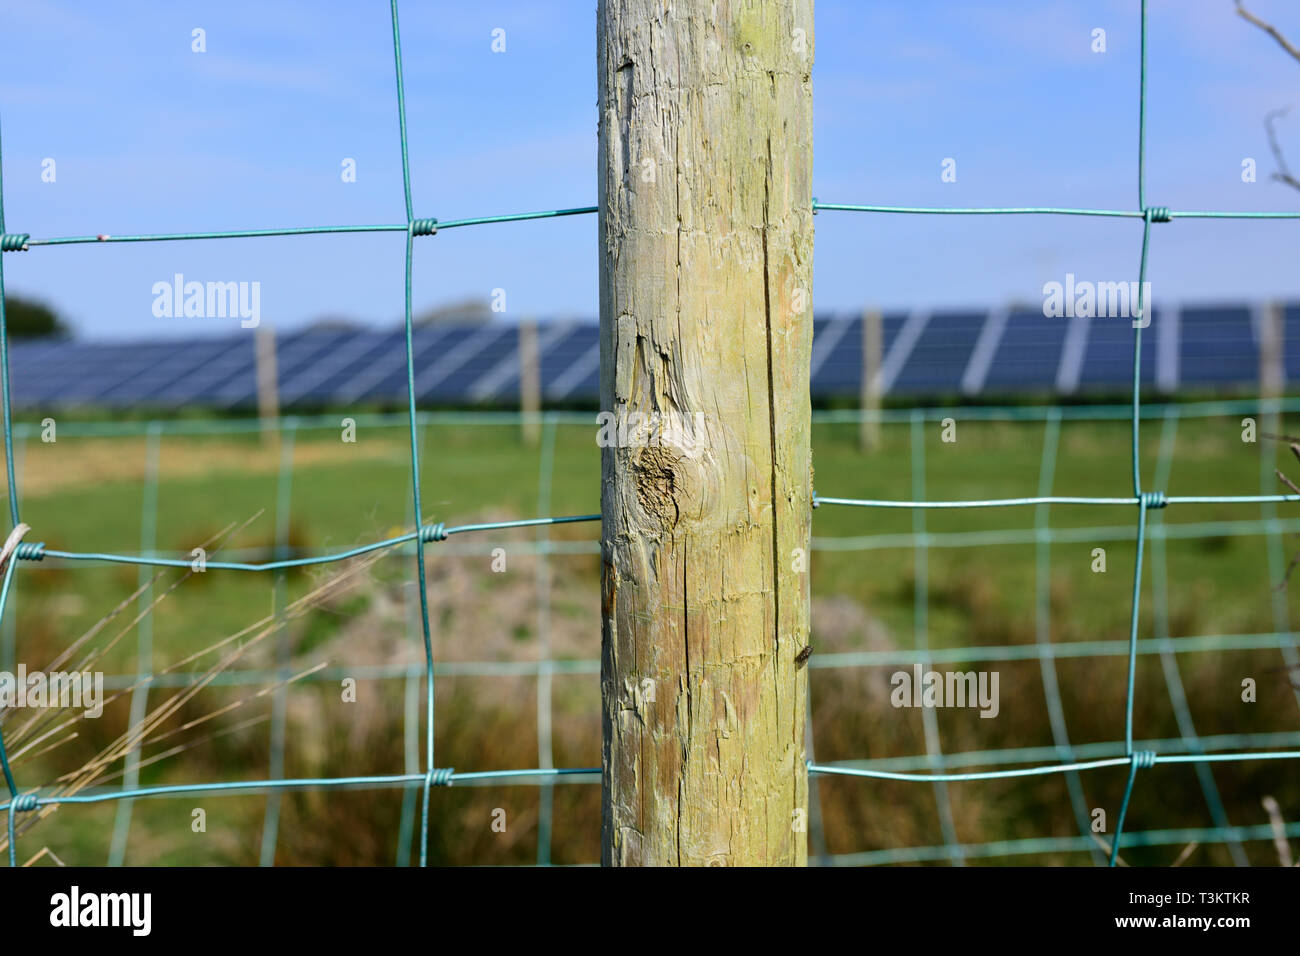 Wooden fence post and wire fence in front of out of focus solar array - Stock Image